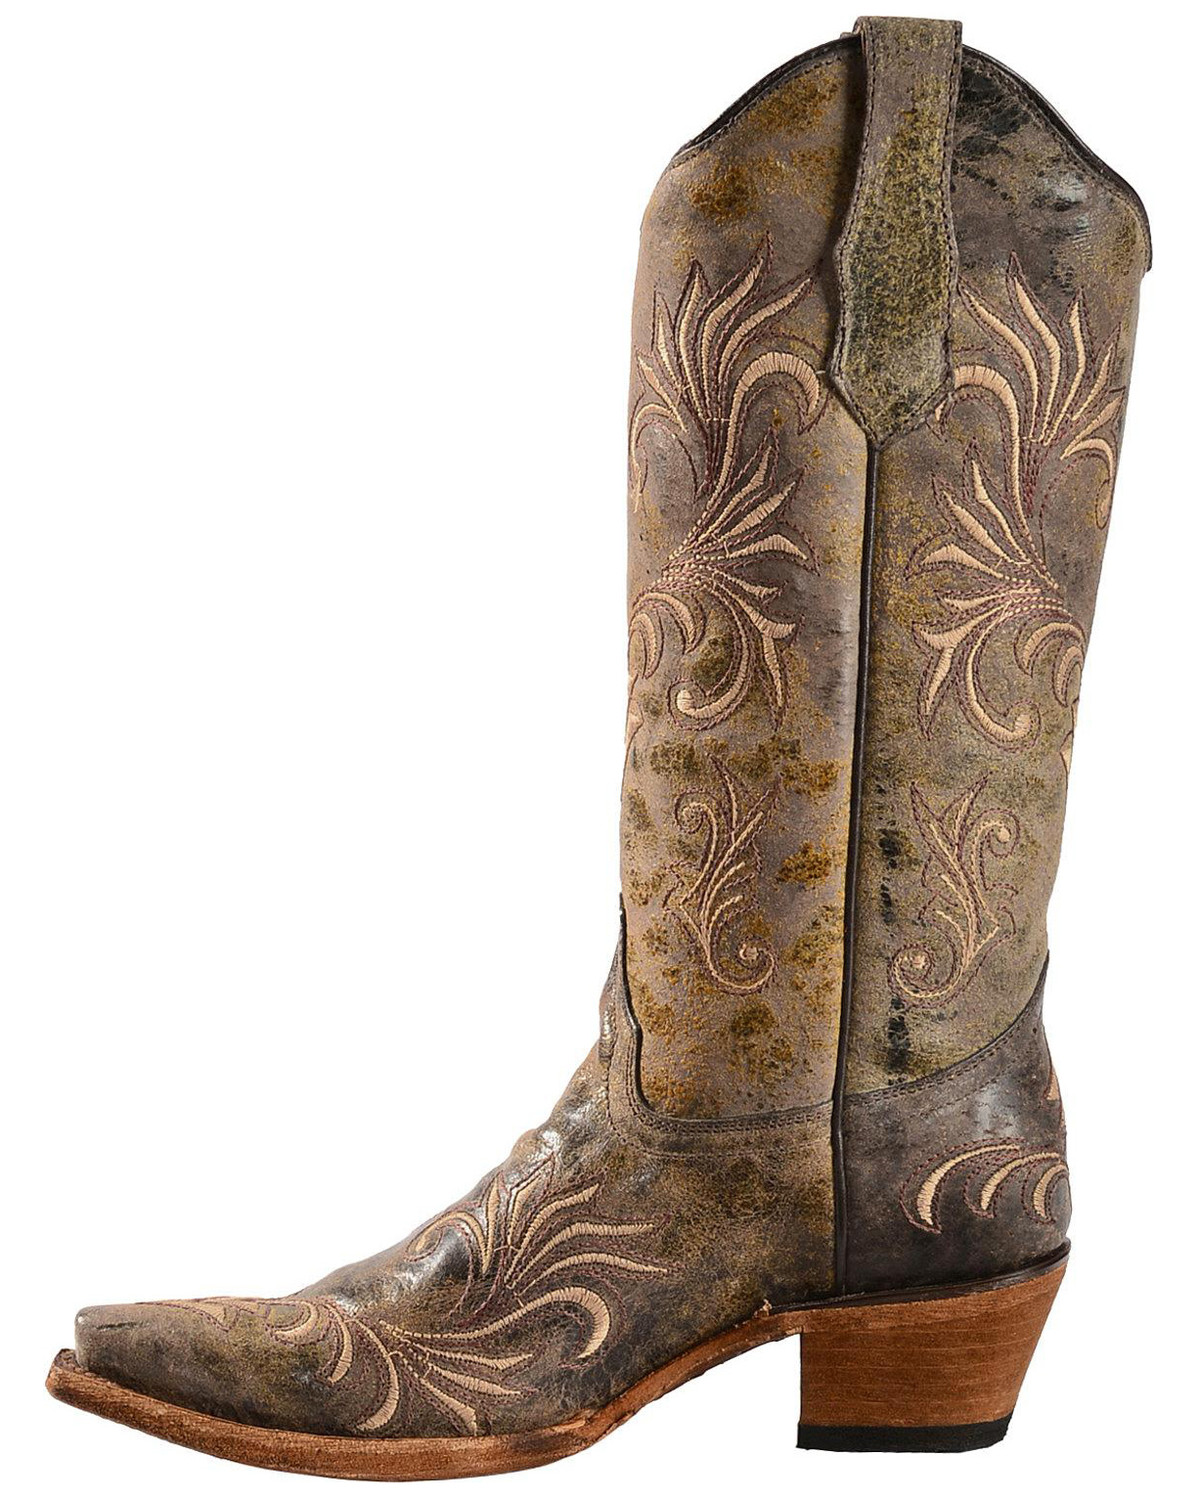 Circle G Women's Filigree Cowgirl Boots - Snip Toe - Country Outfitter